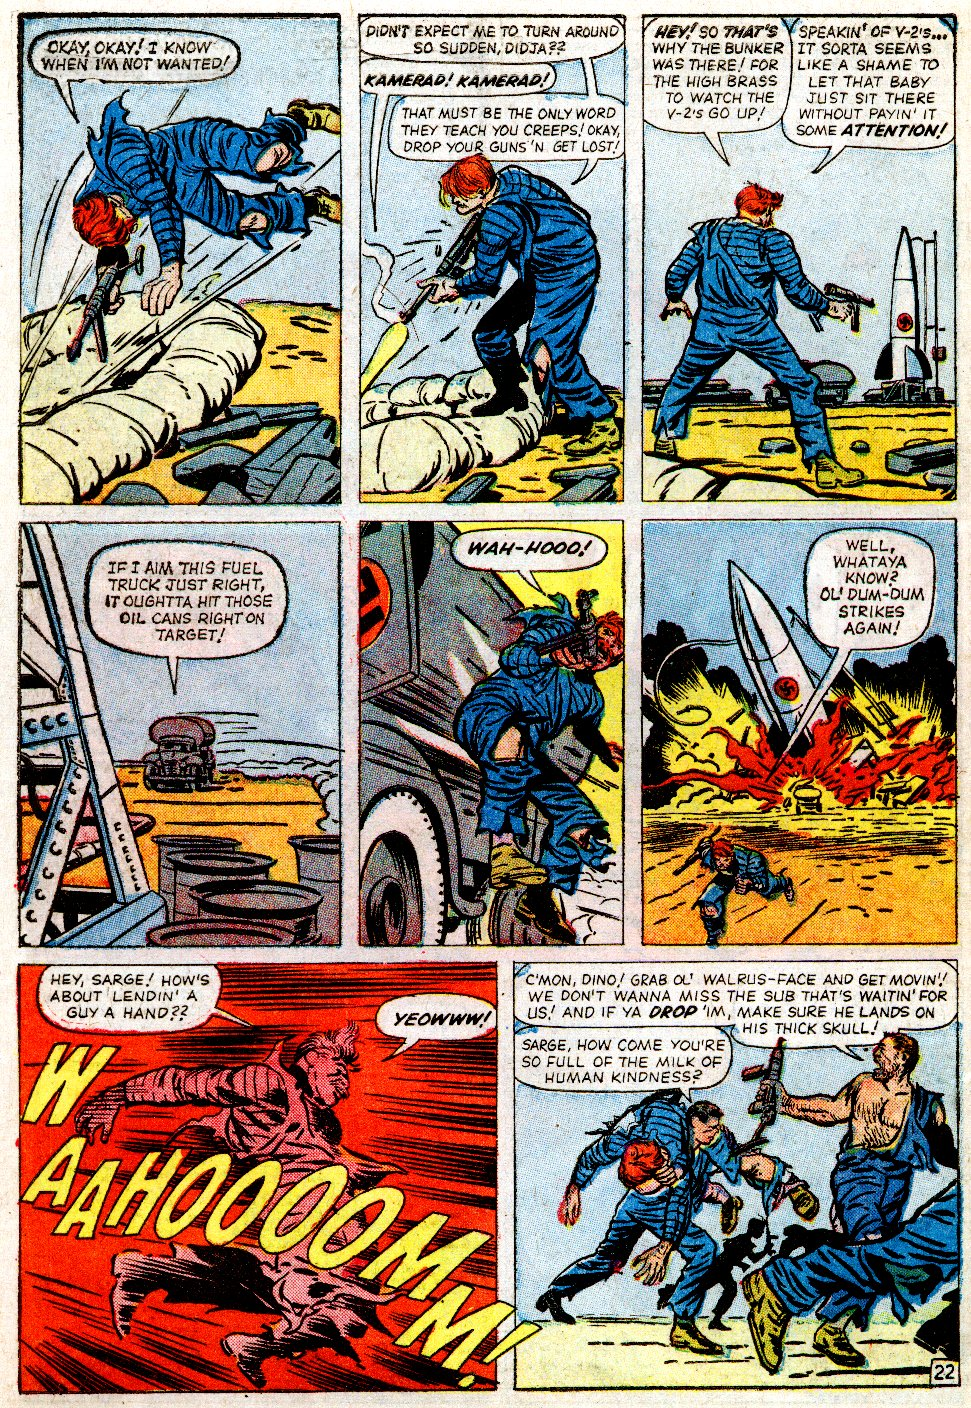 Read online Sgt. Fury comic -  Issue #2 - 30